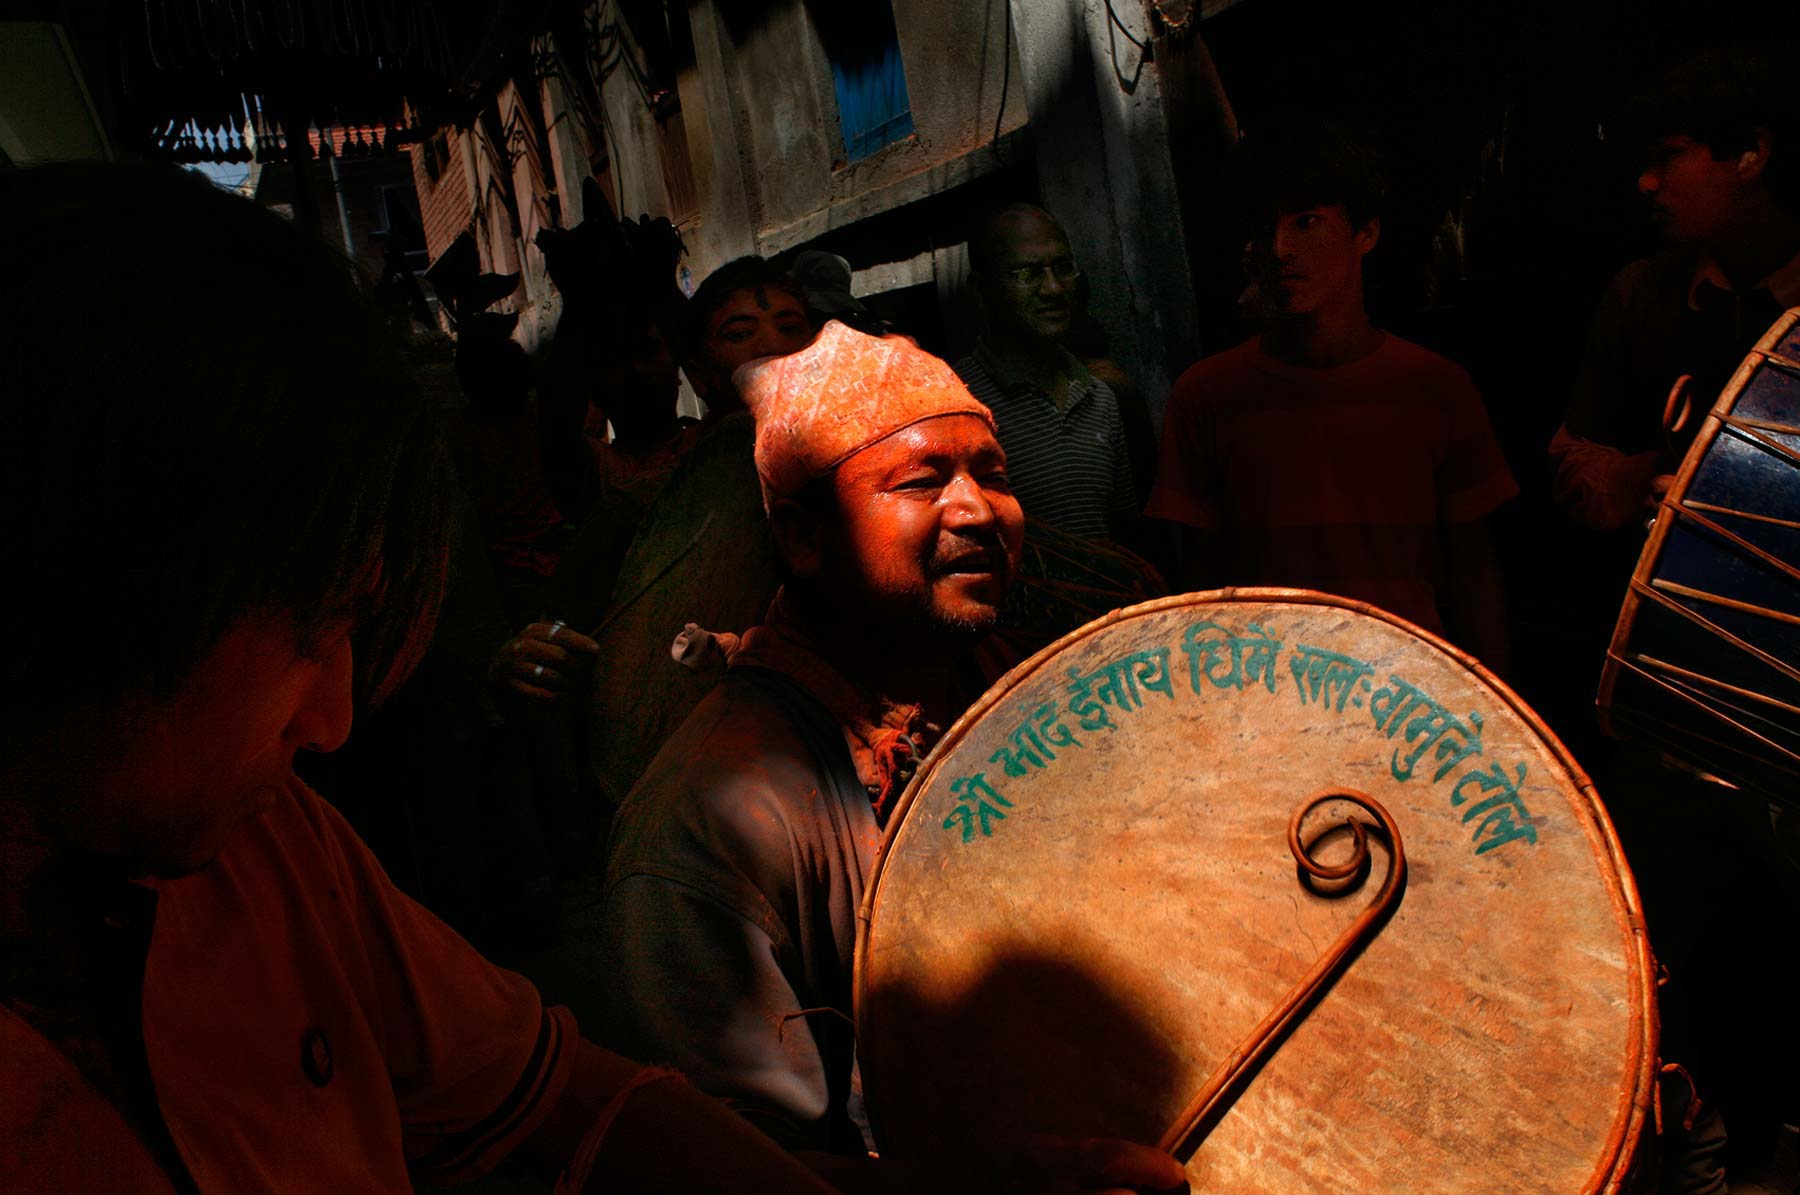 Nepal man in red dye beats drum Bhaktapur